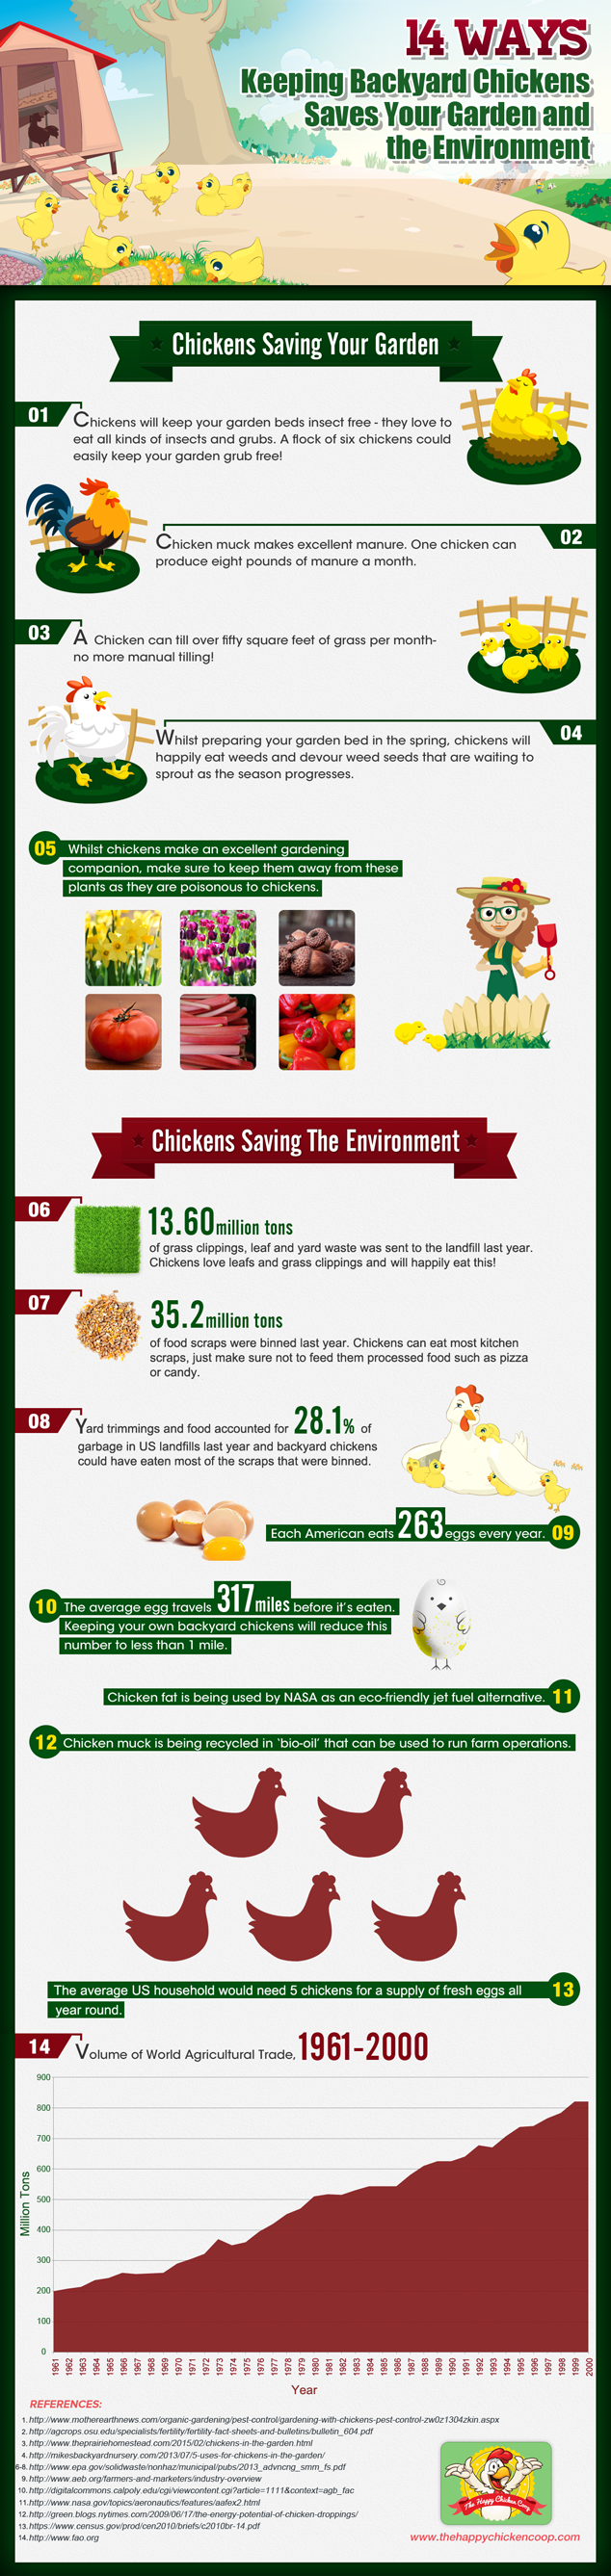 14 Ways Keeping Backyard Chickens Saves Your Garden and the Environment